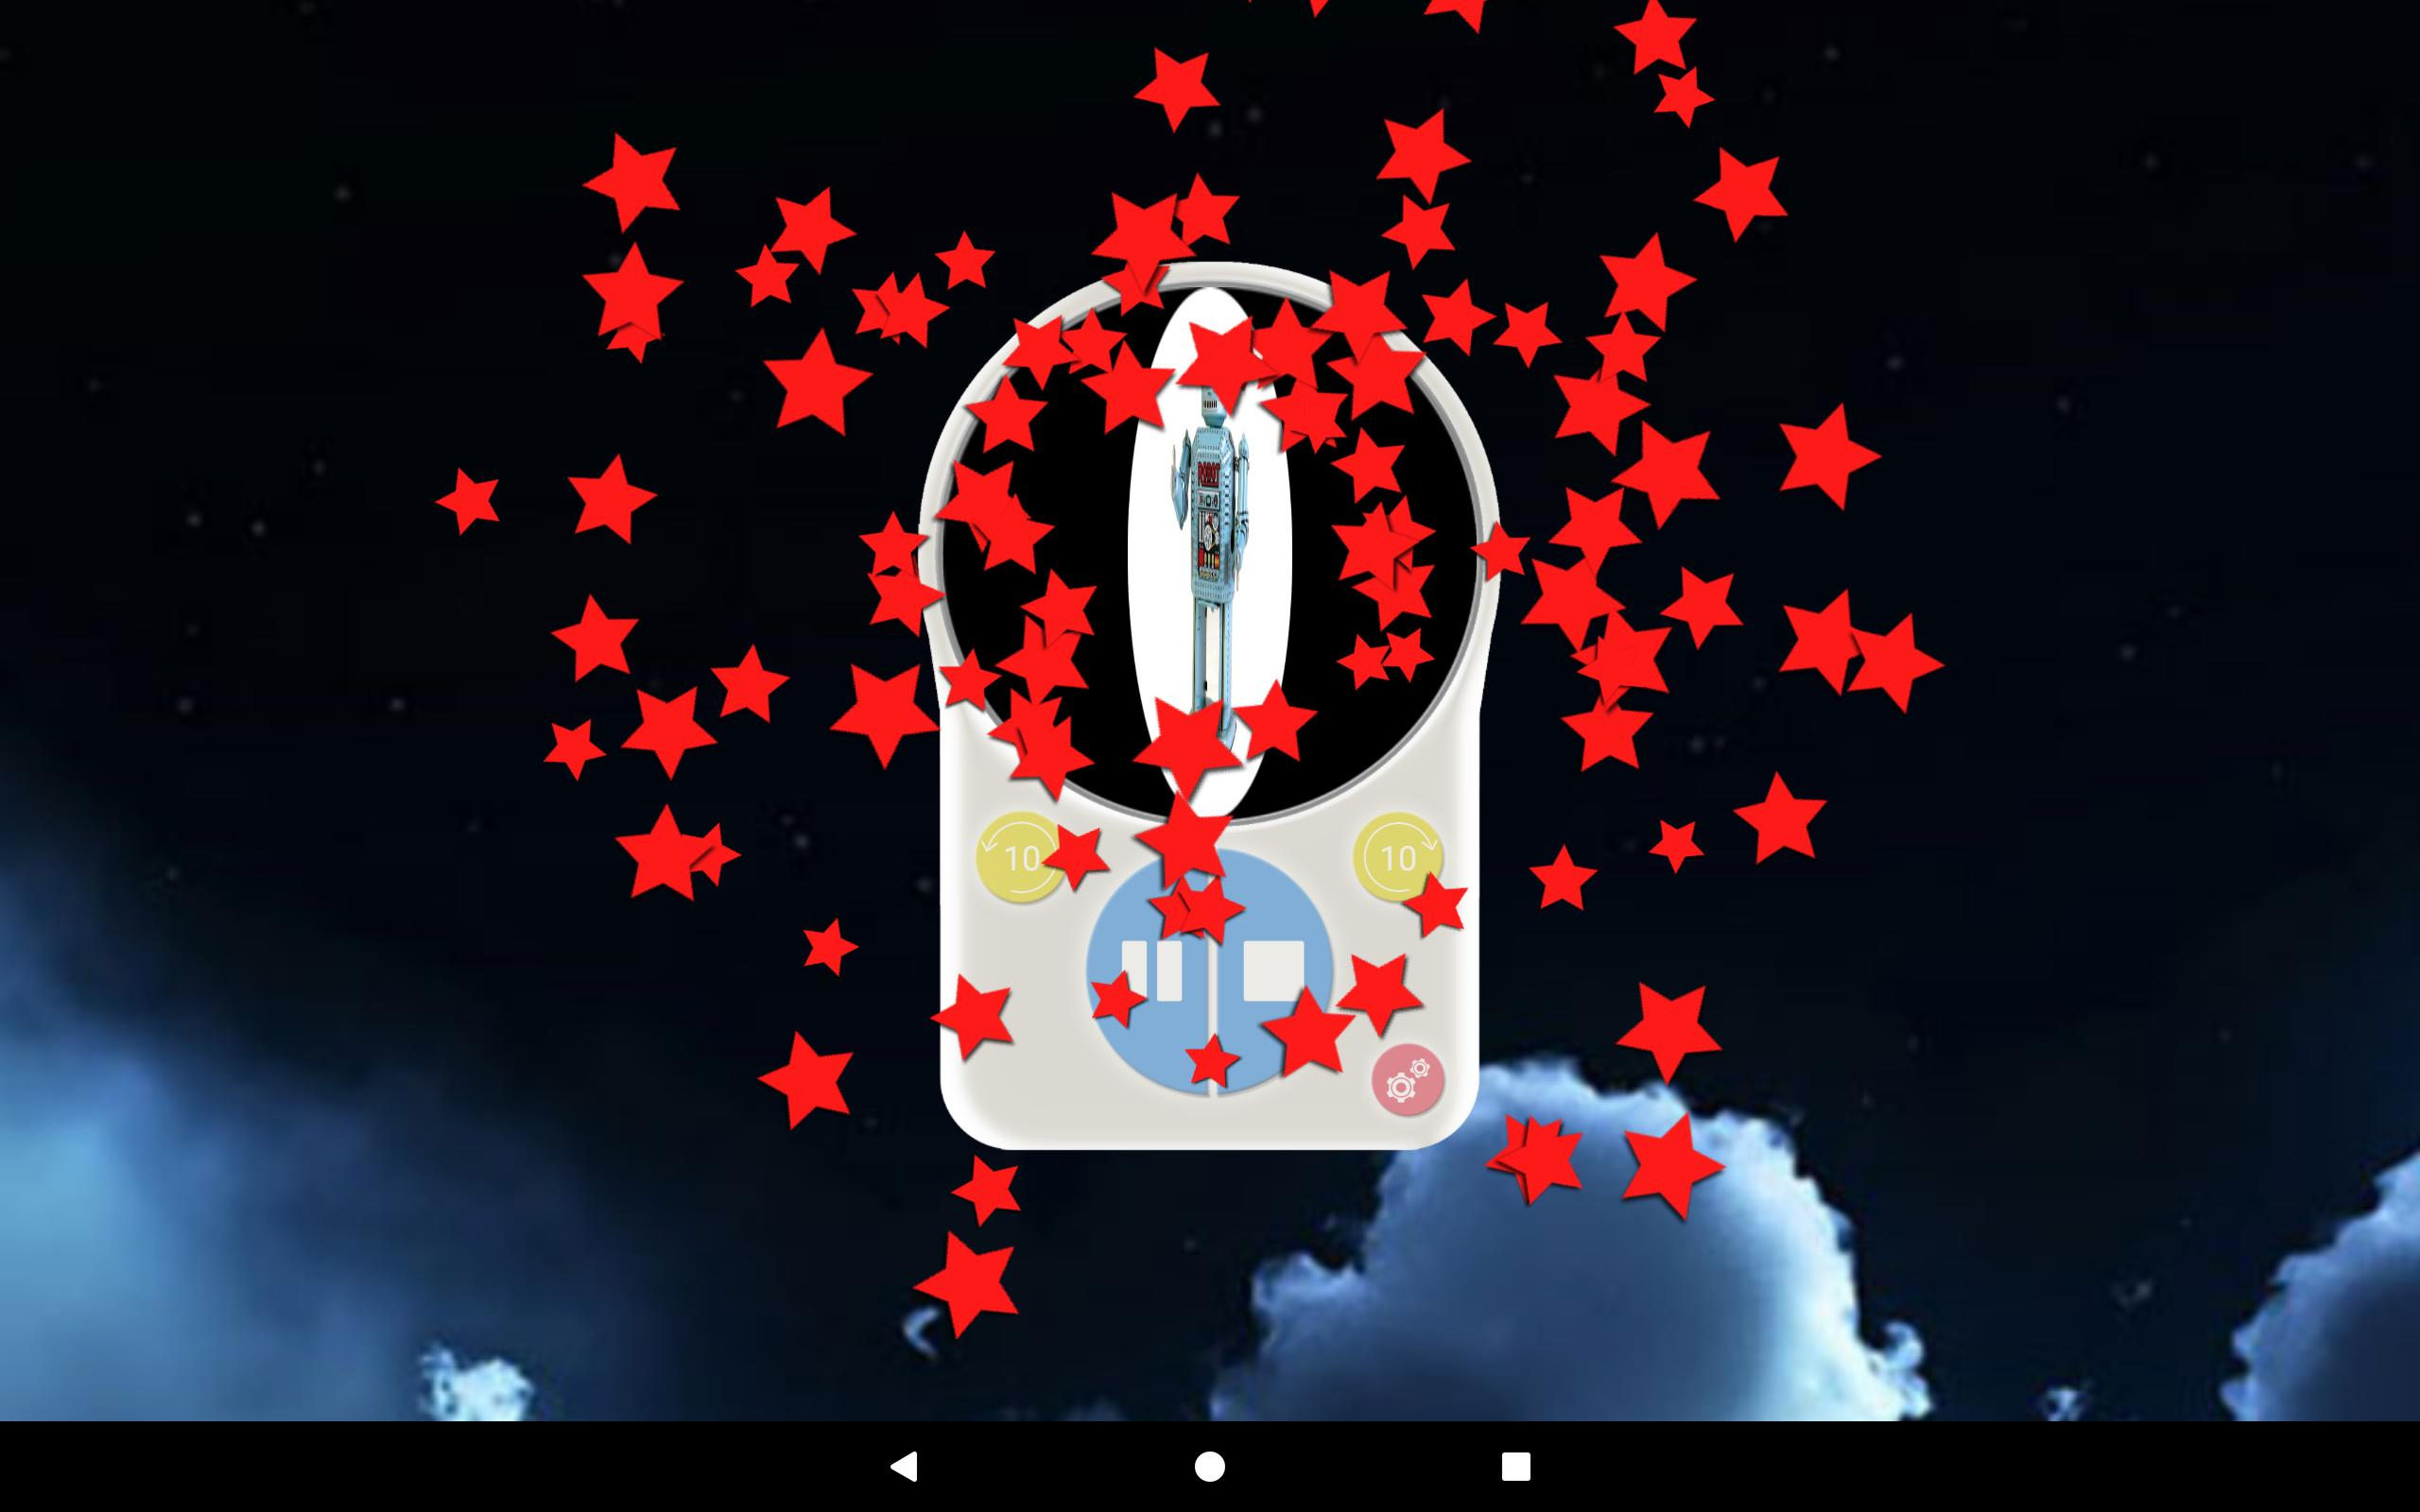 Childrens Countdown Timer for Android - APK Download